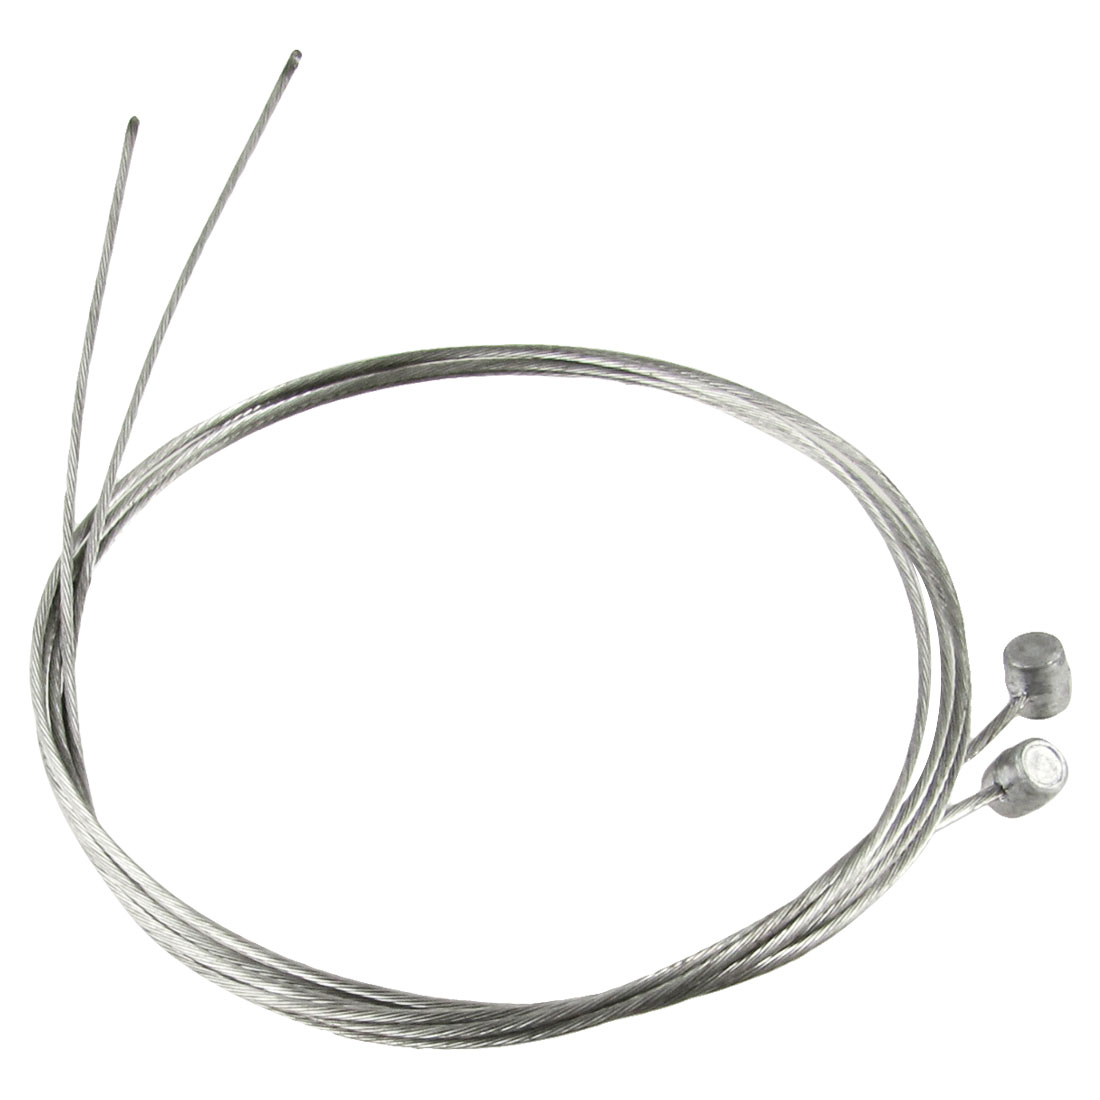 "2 Pcs 30"" Length Bike Bicycle Repair Part Front Brake Cable Steel Wire"